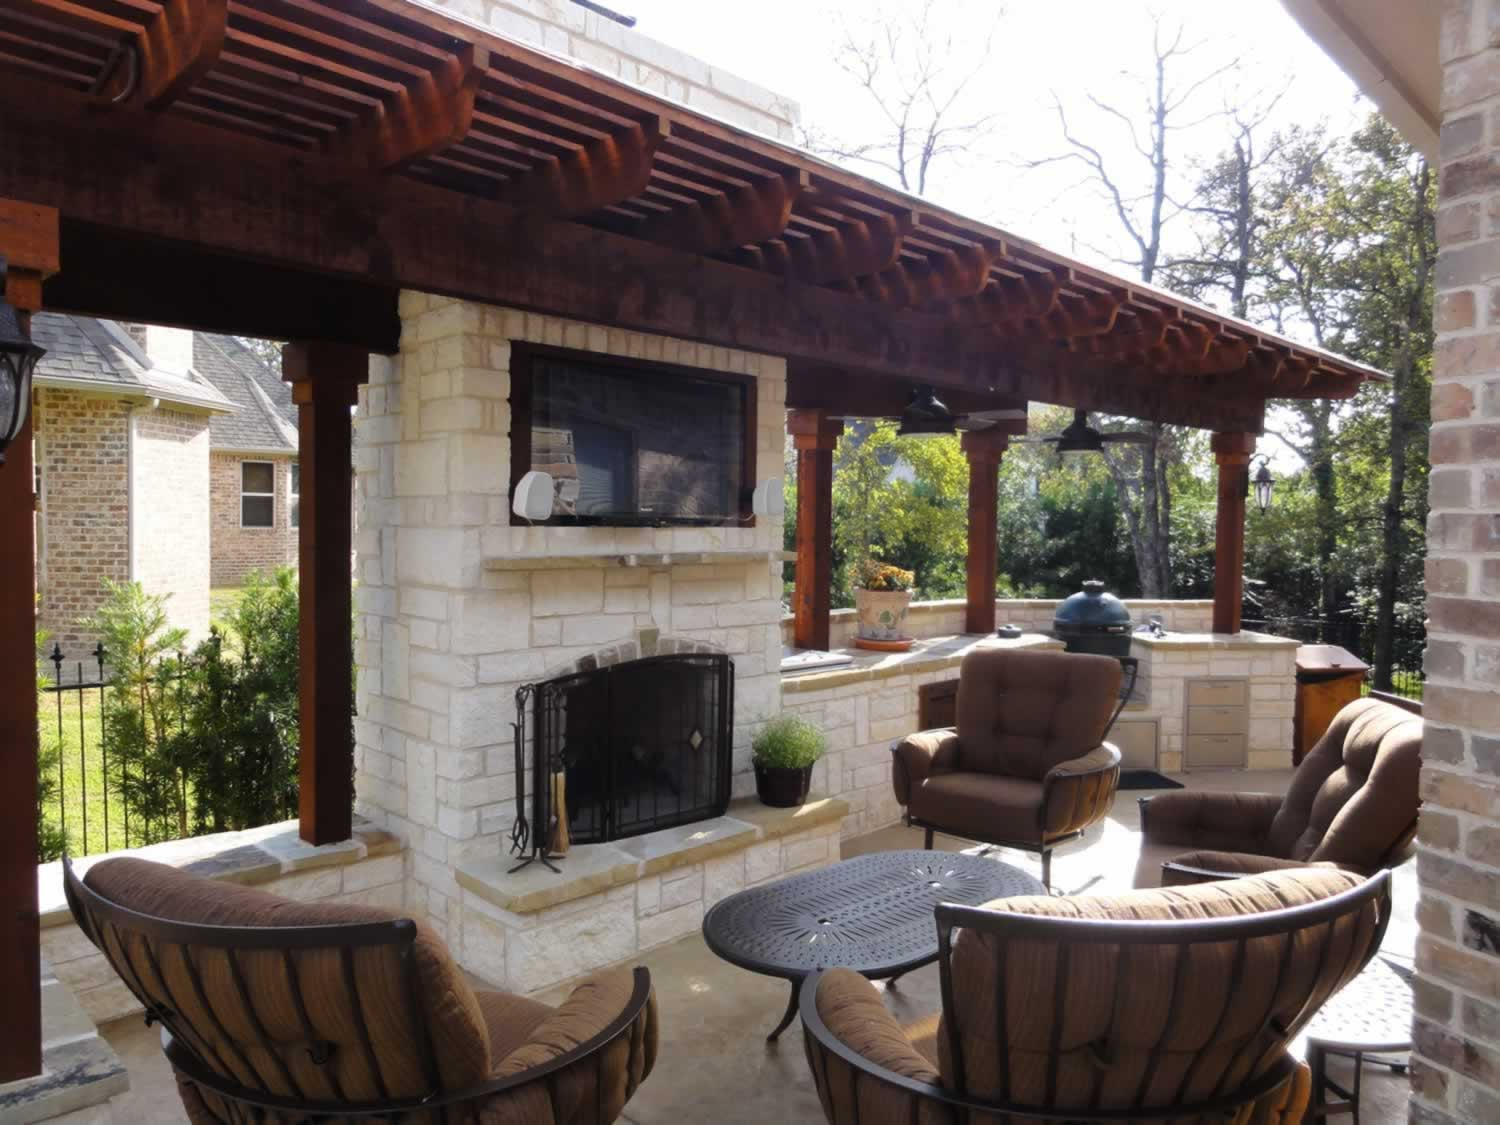 Landscape by Design | Landscape Contractor in North Texas on Outdoor Living Designer  id=63533